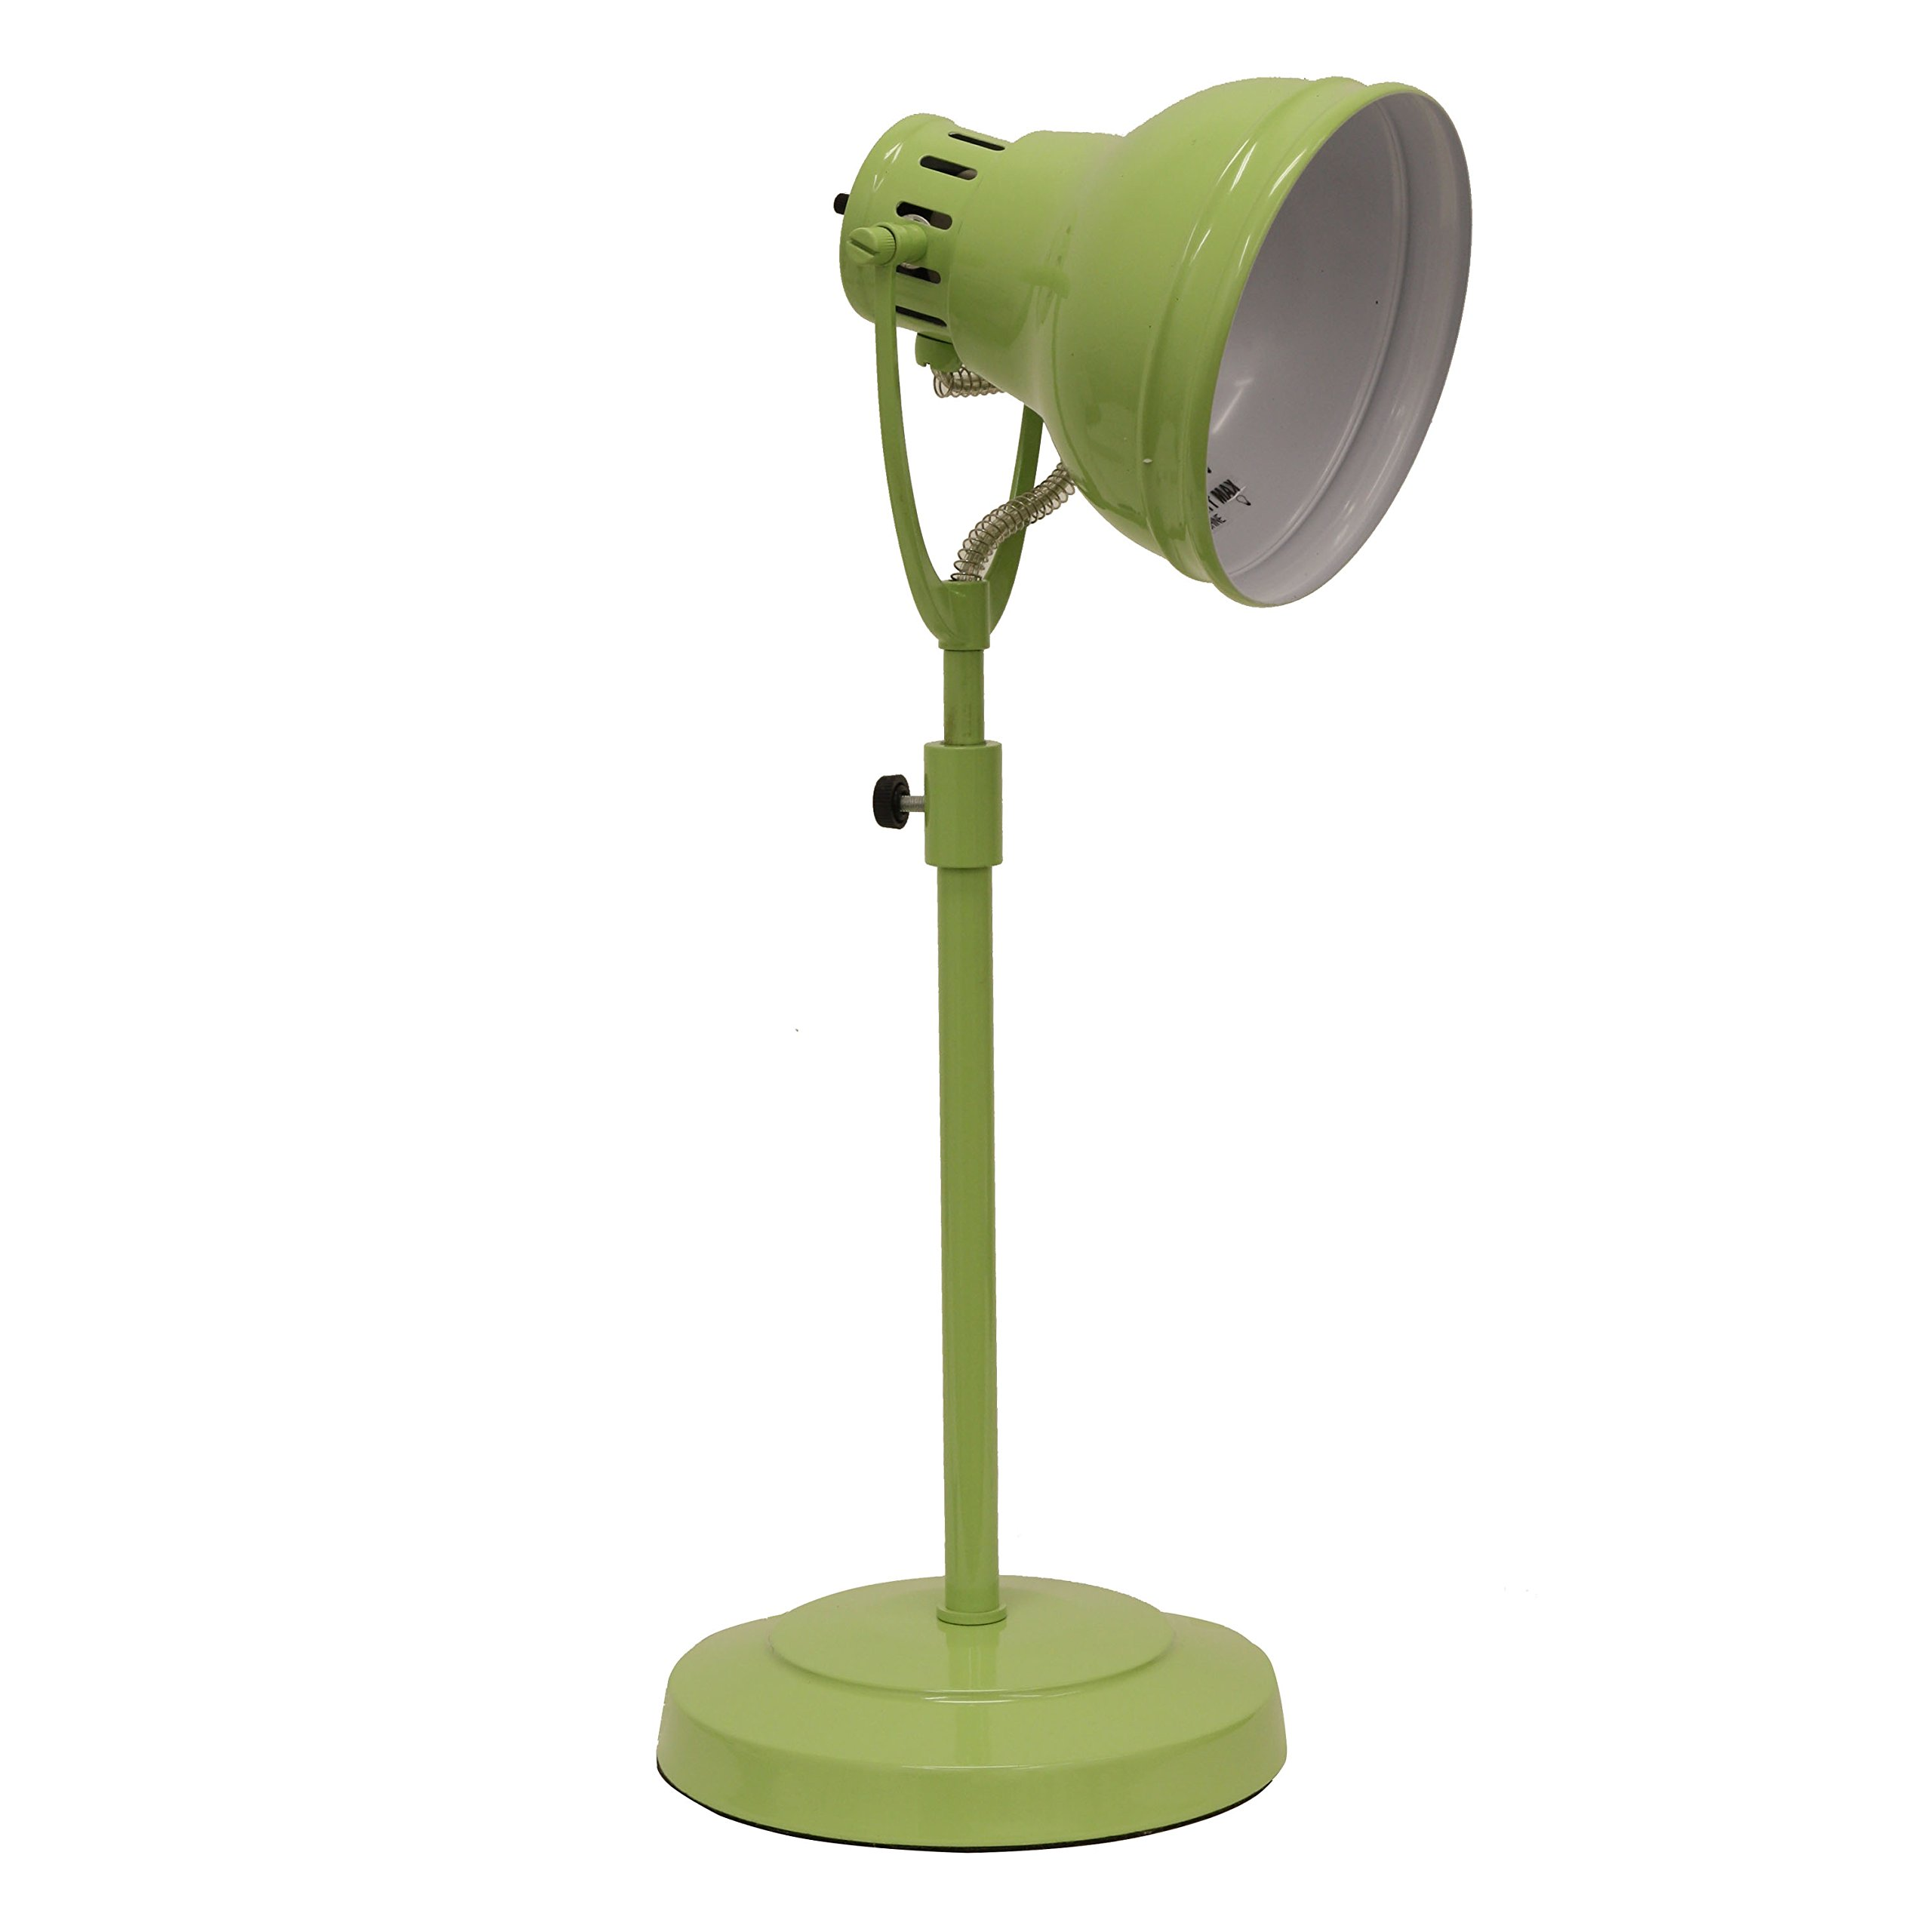 Décor Therapy TL13954 Desk Task Table Lamp with Adjustable Shade, Green